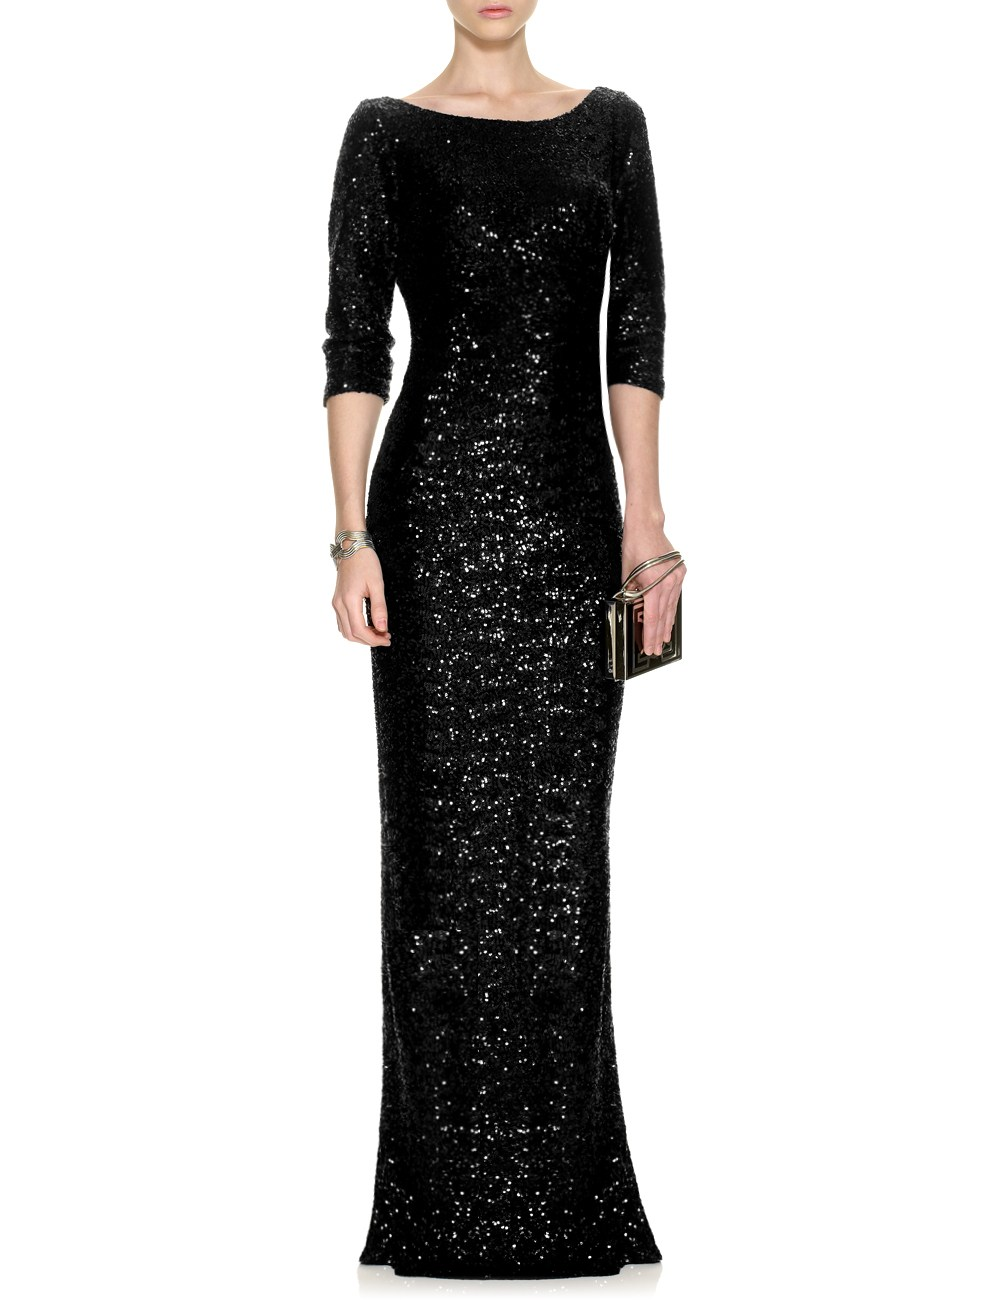 Azzaro Black Sequin Dress on Avenue 32